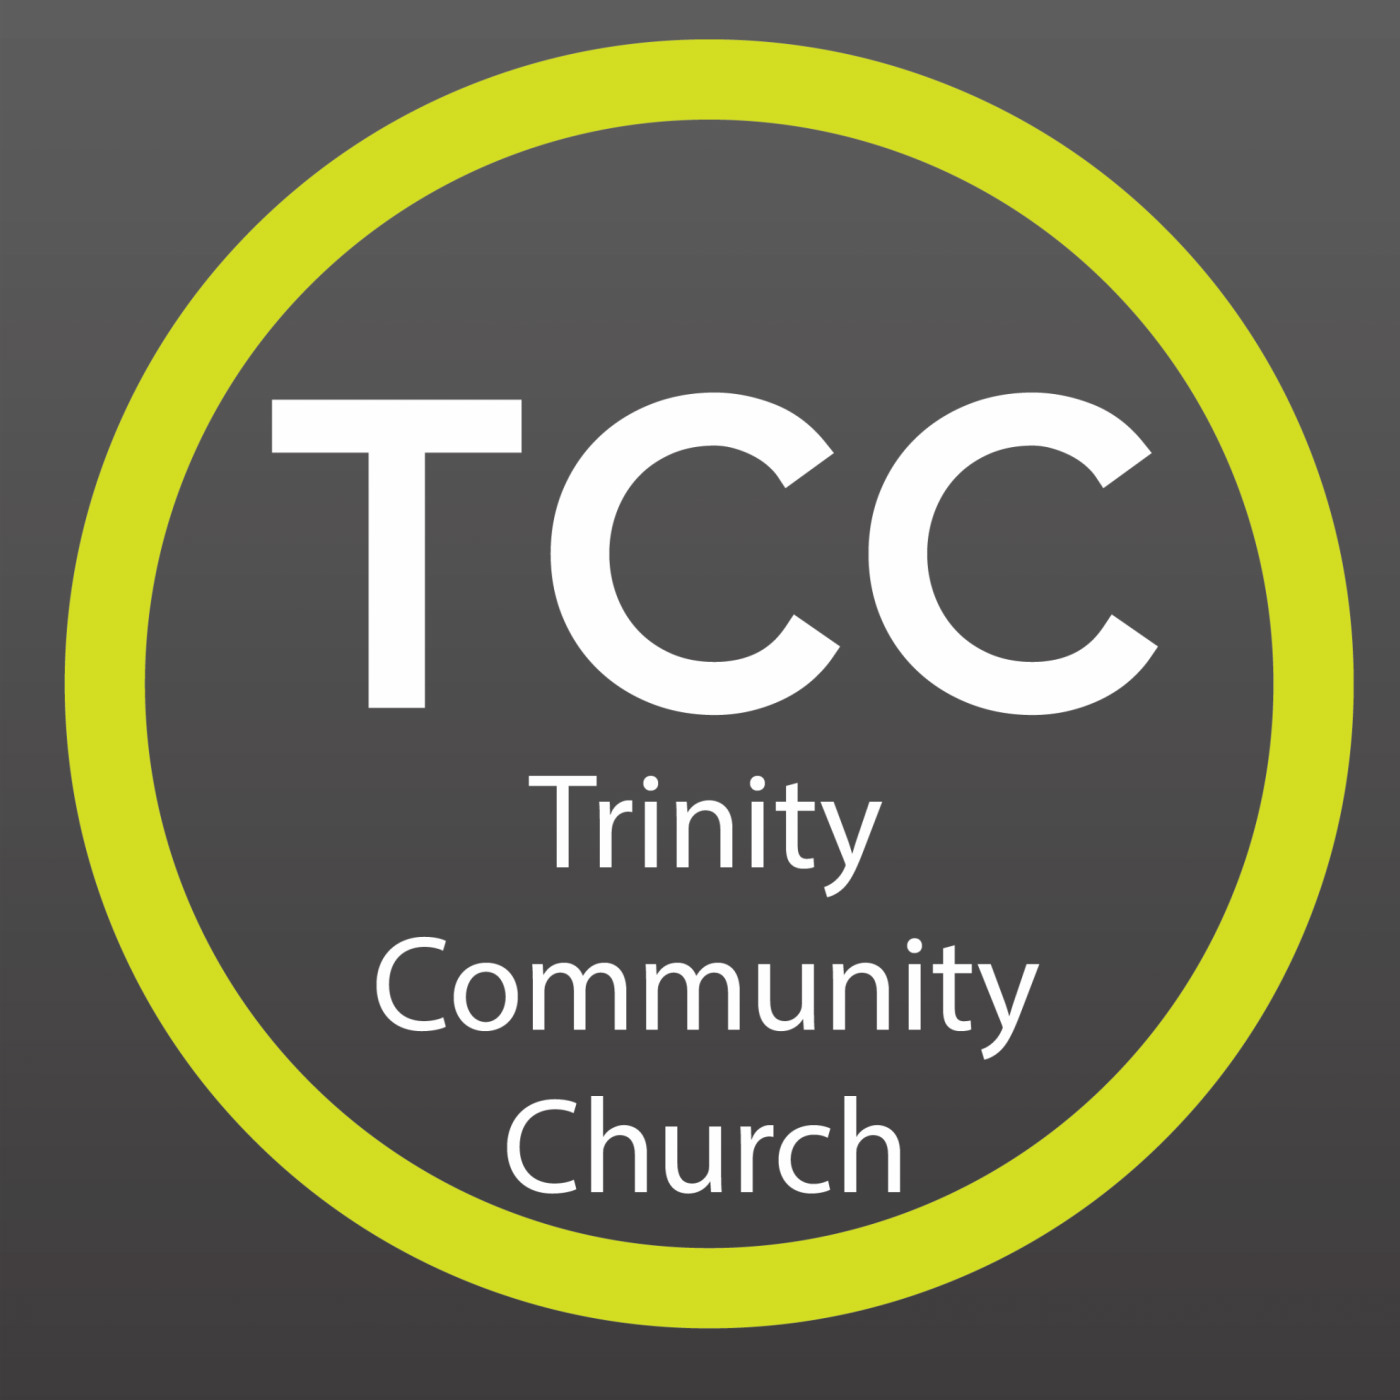 Trinity Community Church, Hockessin, DE